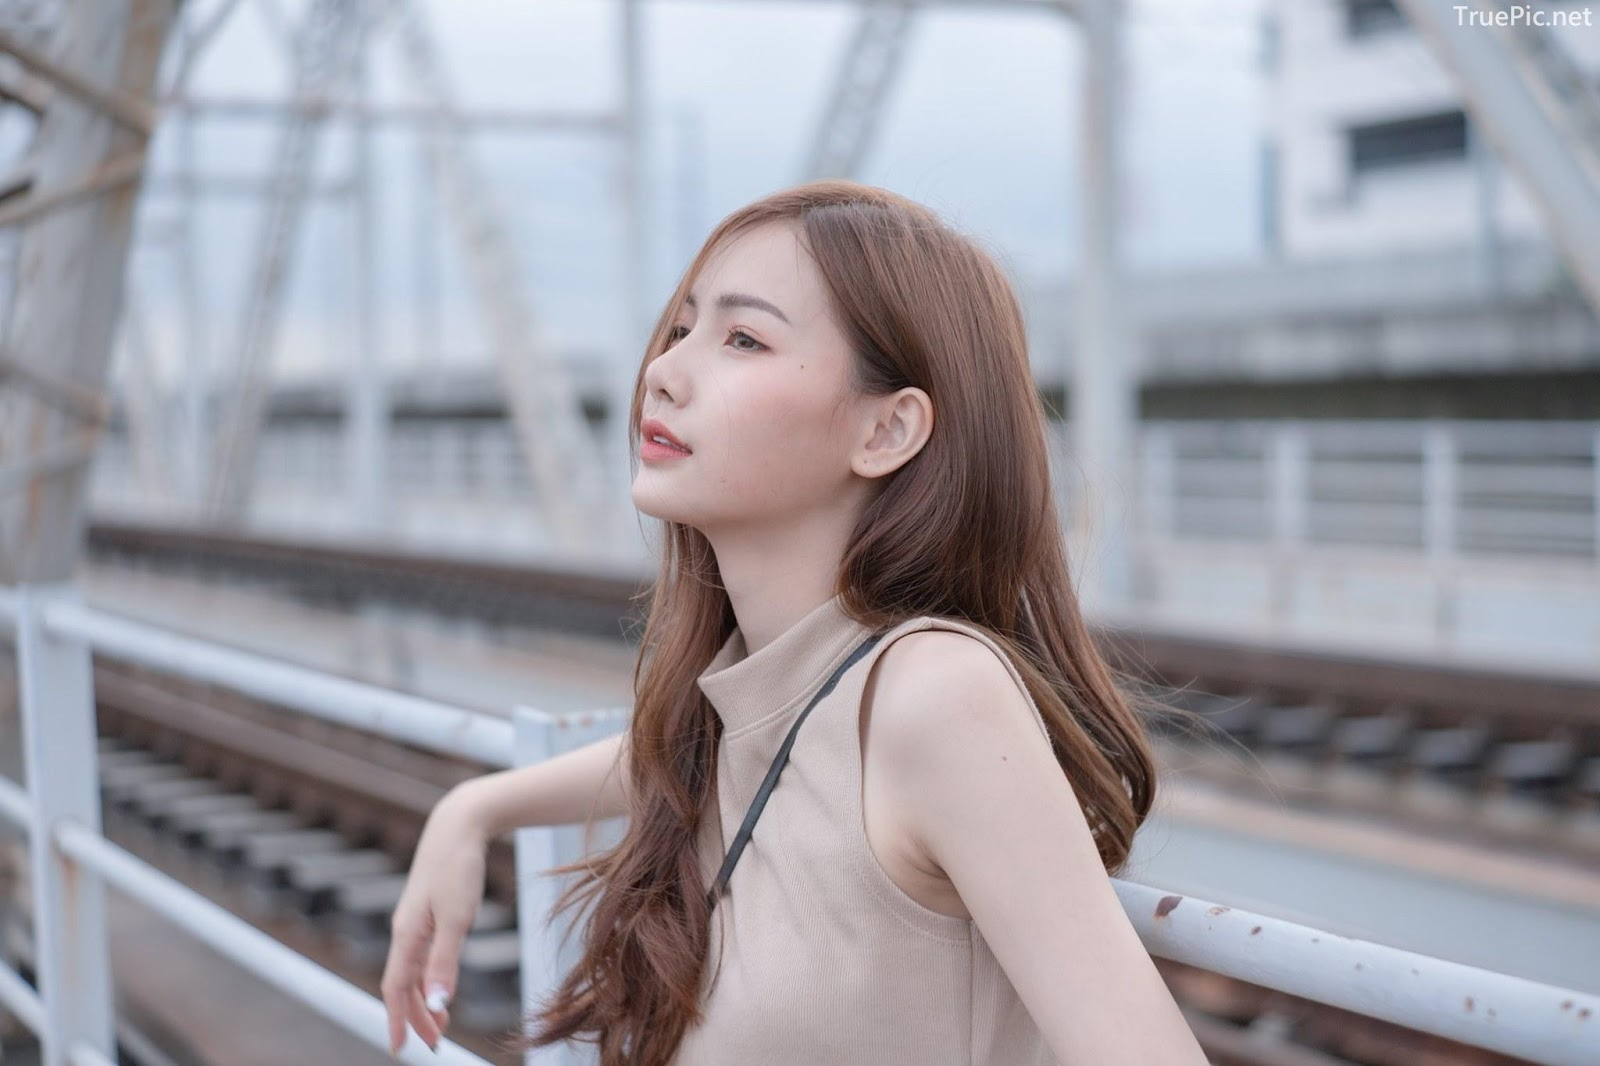 Thailand beautiful model - Pla Kewalin Udomaksorn - A beautiful morning with a cute girl - Picture 2